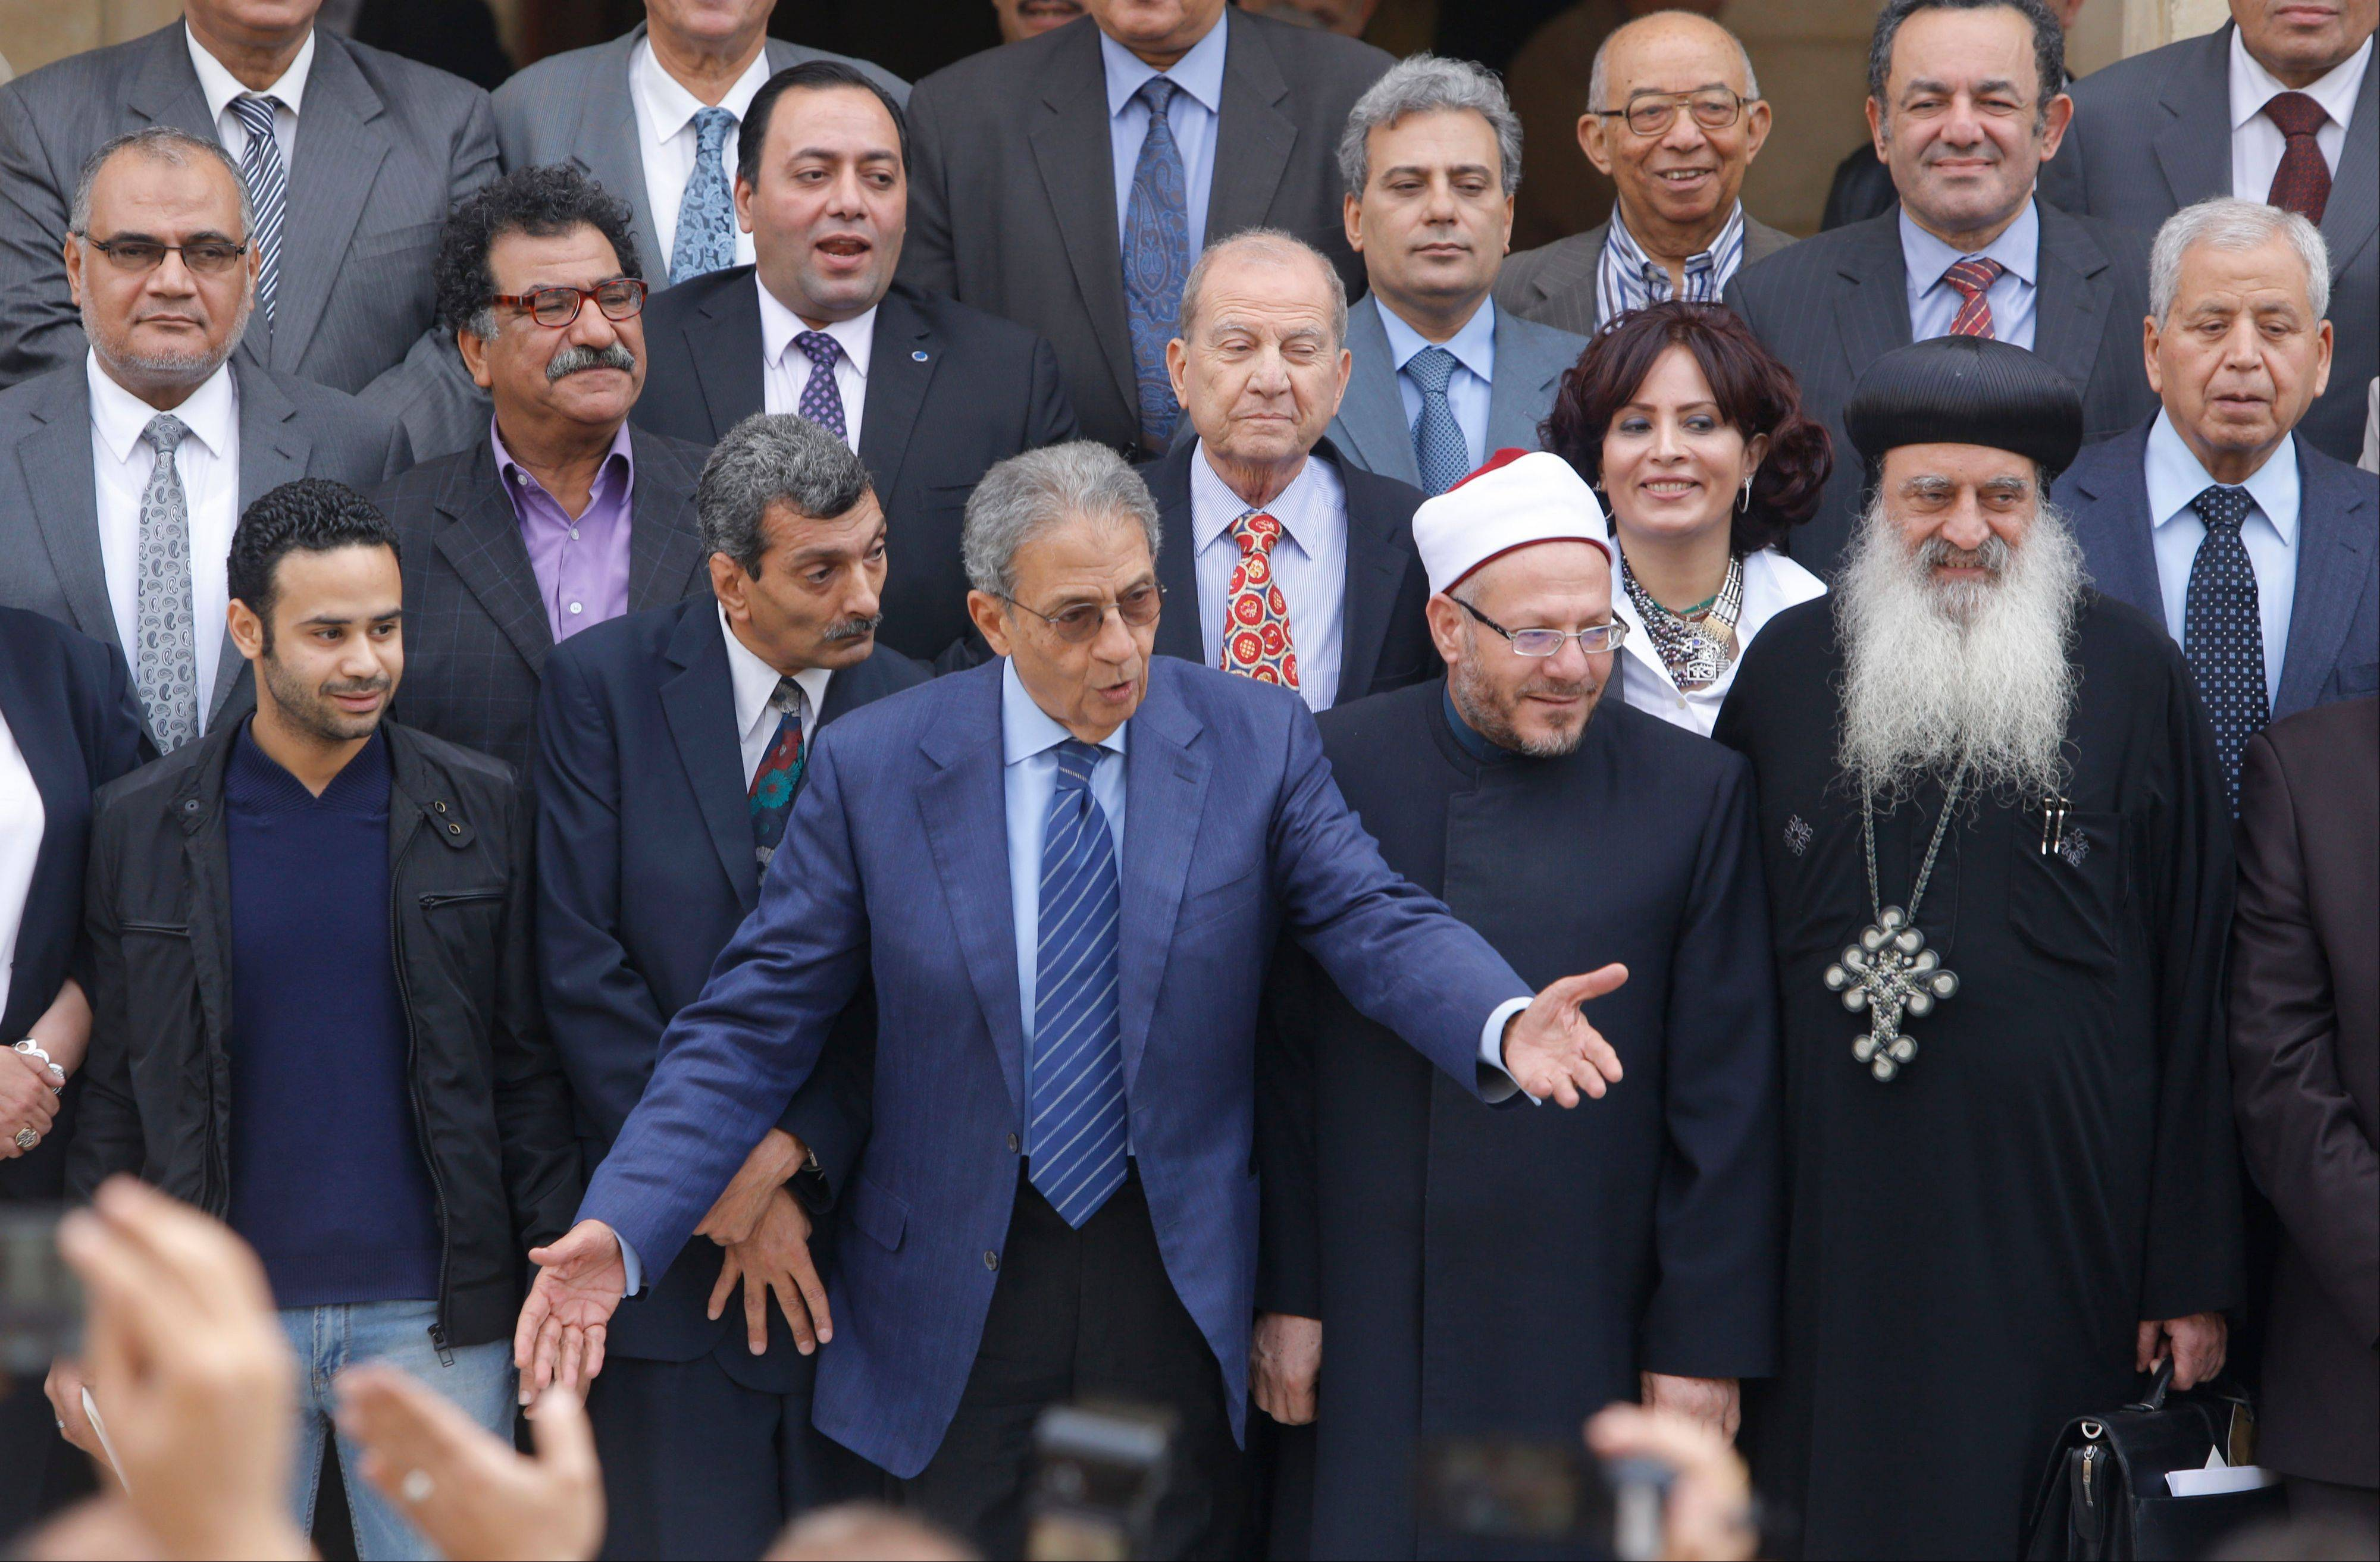 Amr Moussa, center, chairman of Egypt�s 50-member panel tasked with amending Egypt�s Islamist-drafted constitution, arranges the members for a group picture after finishing the final draft of a series of constitutional amendments at the Shoura Council in Cairo on Monday.